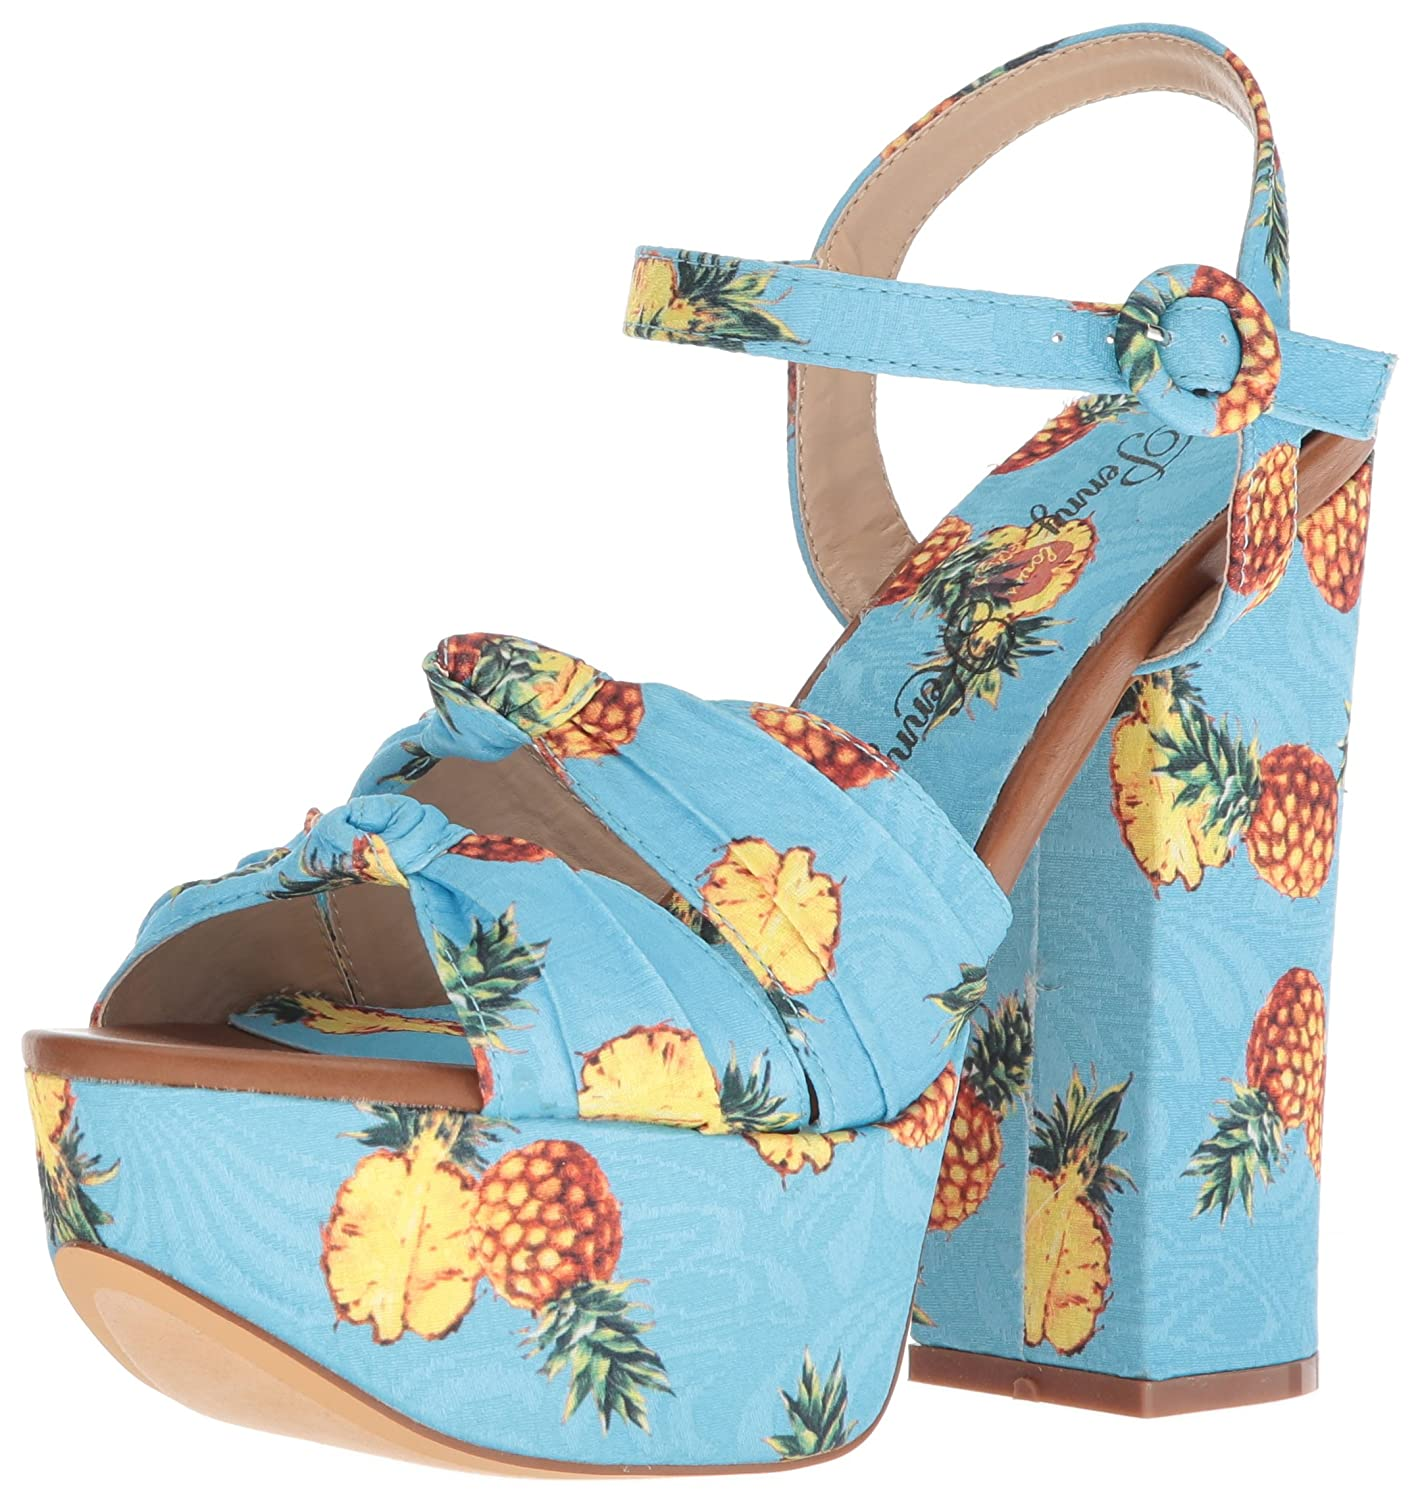 Penny Loves Kenny Women's Scat Platform B076FVCYDT 8.5 W US|Blue Pineapple